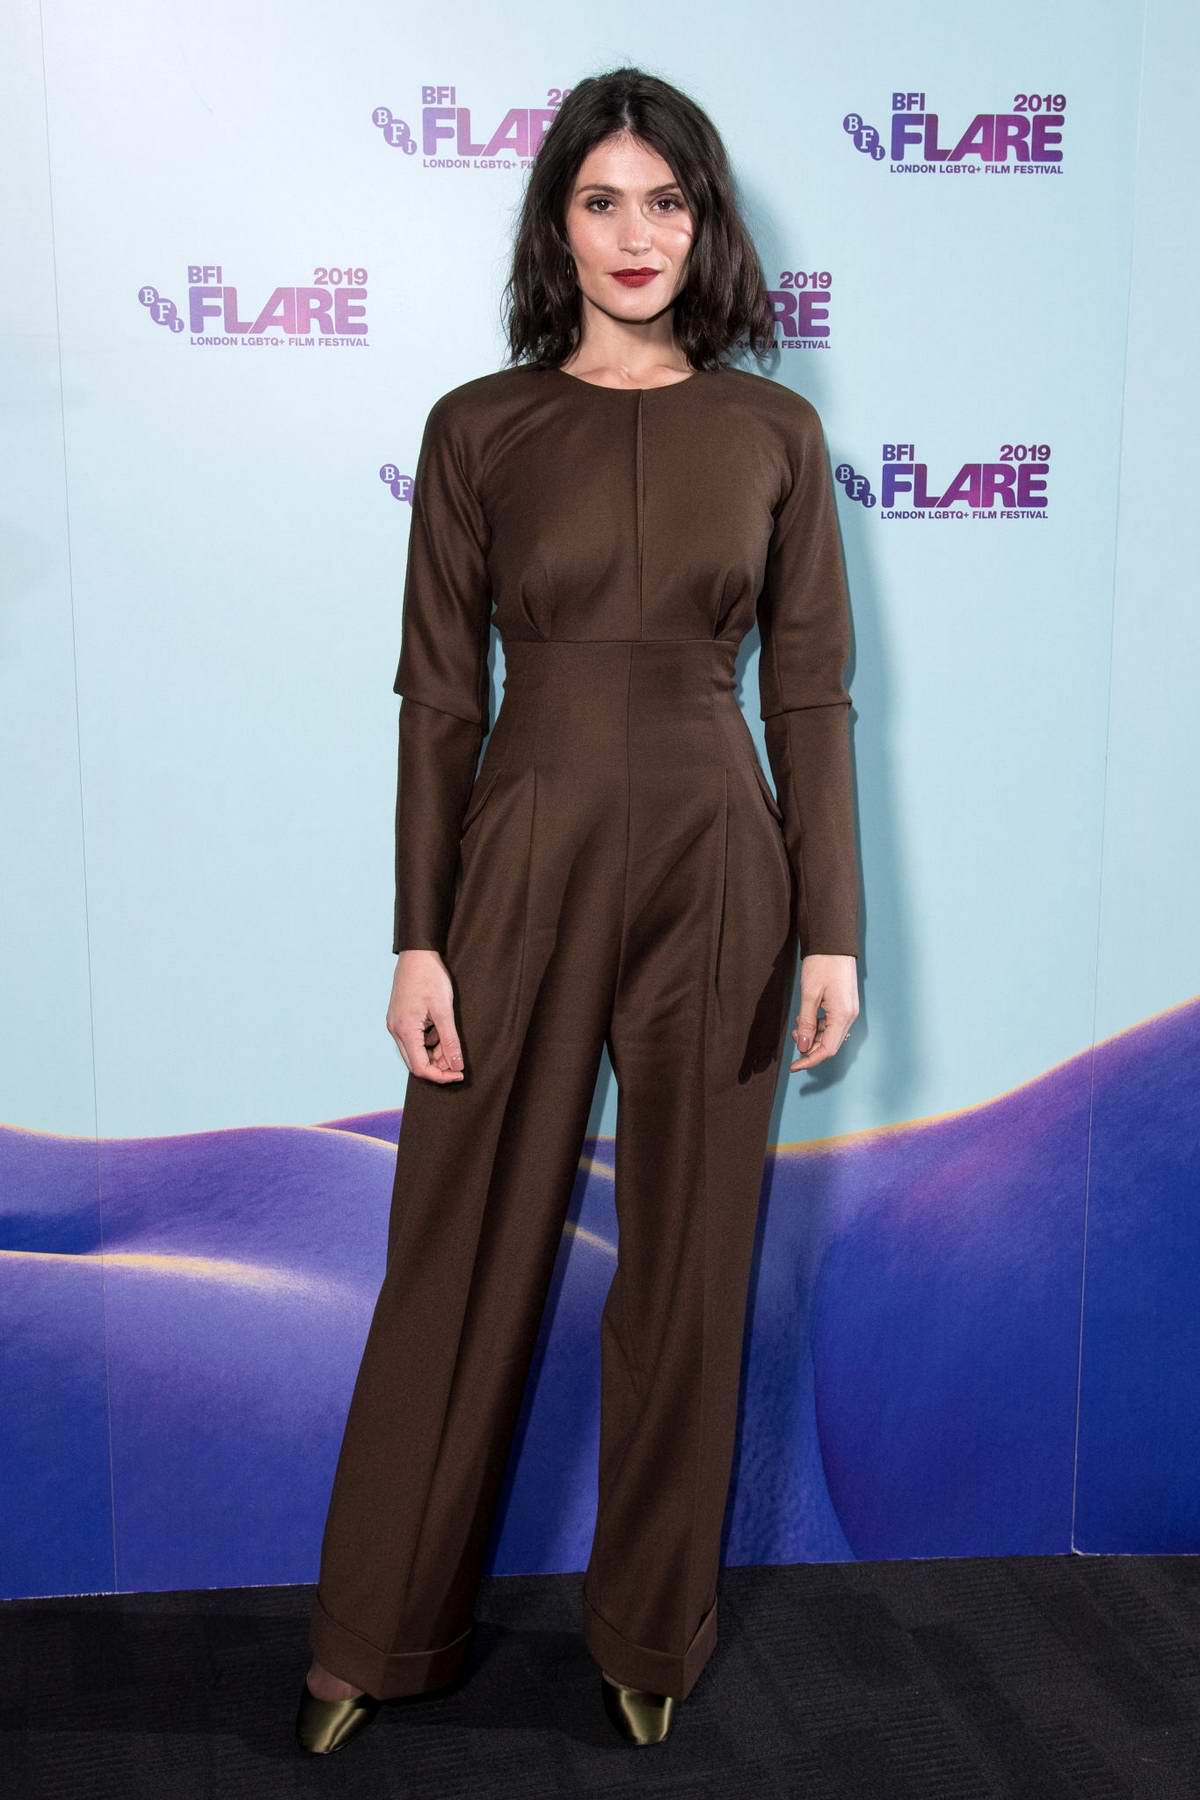 Gemma Arterton attends the 'Vita & Virginia' UK Premiere & Opening Night Gala of the 33rd BFI FLARE Film Festival in London, UK